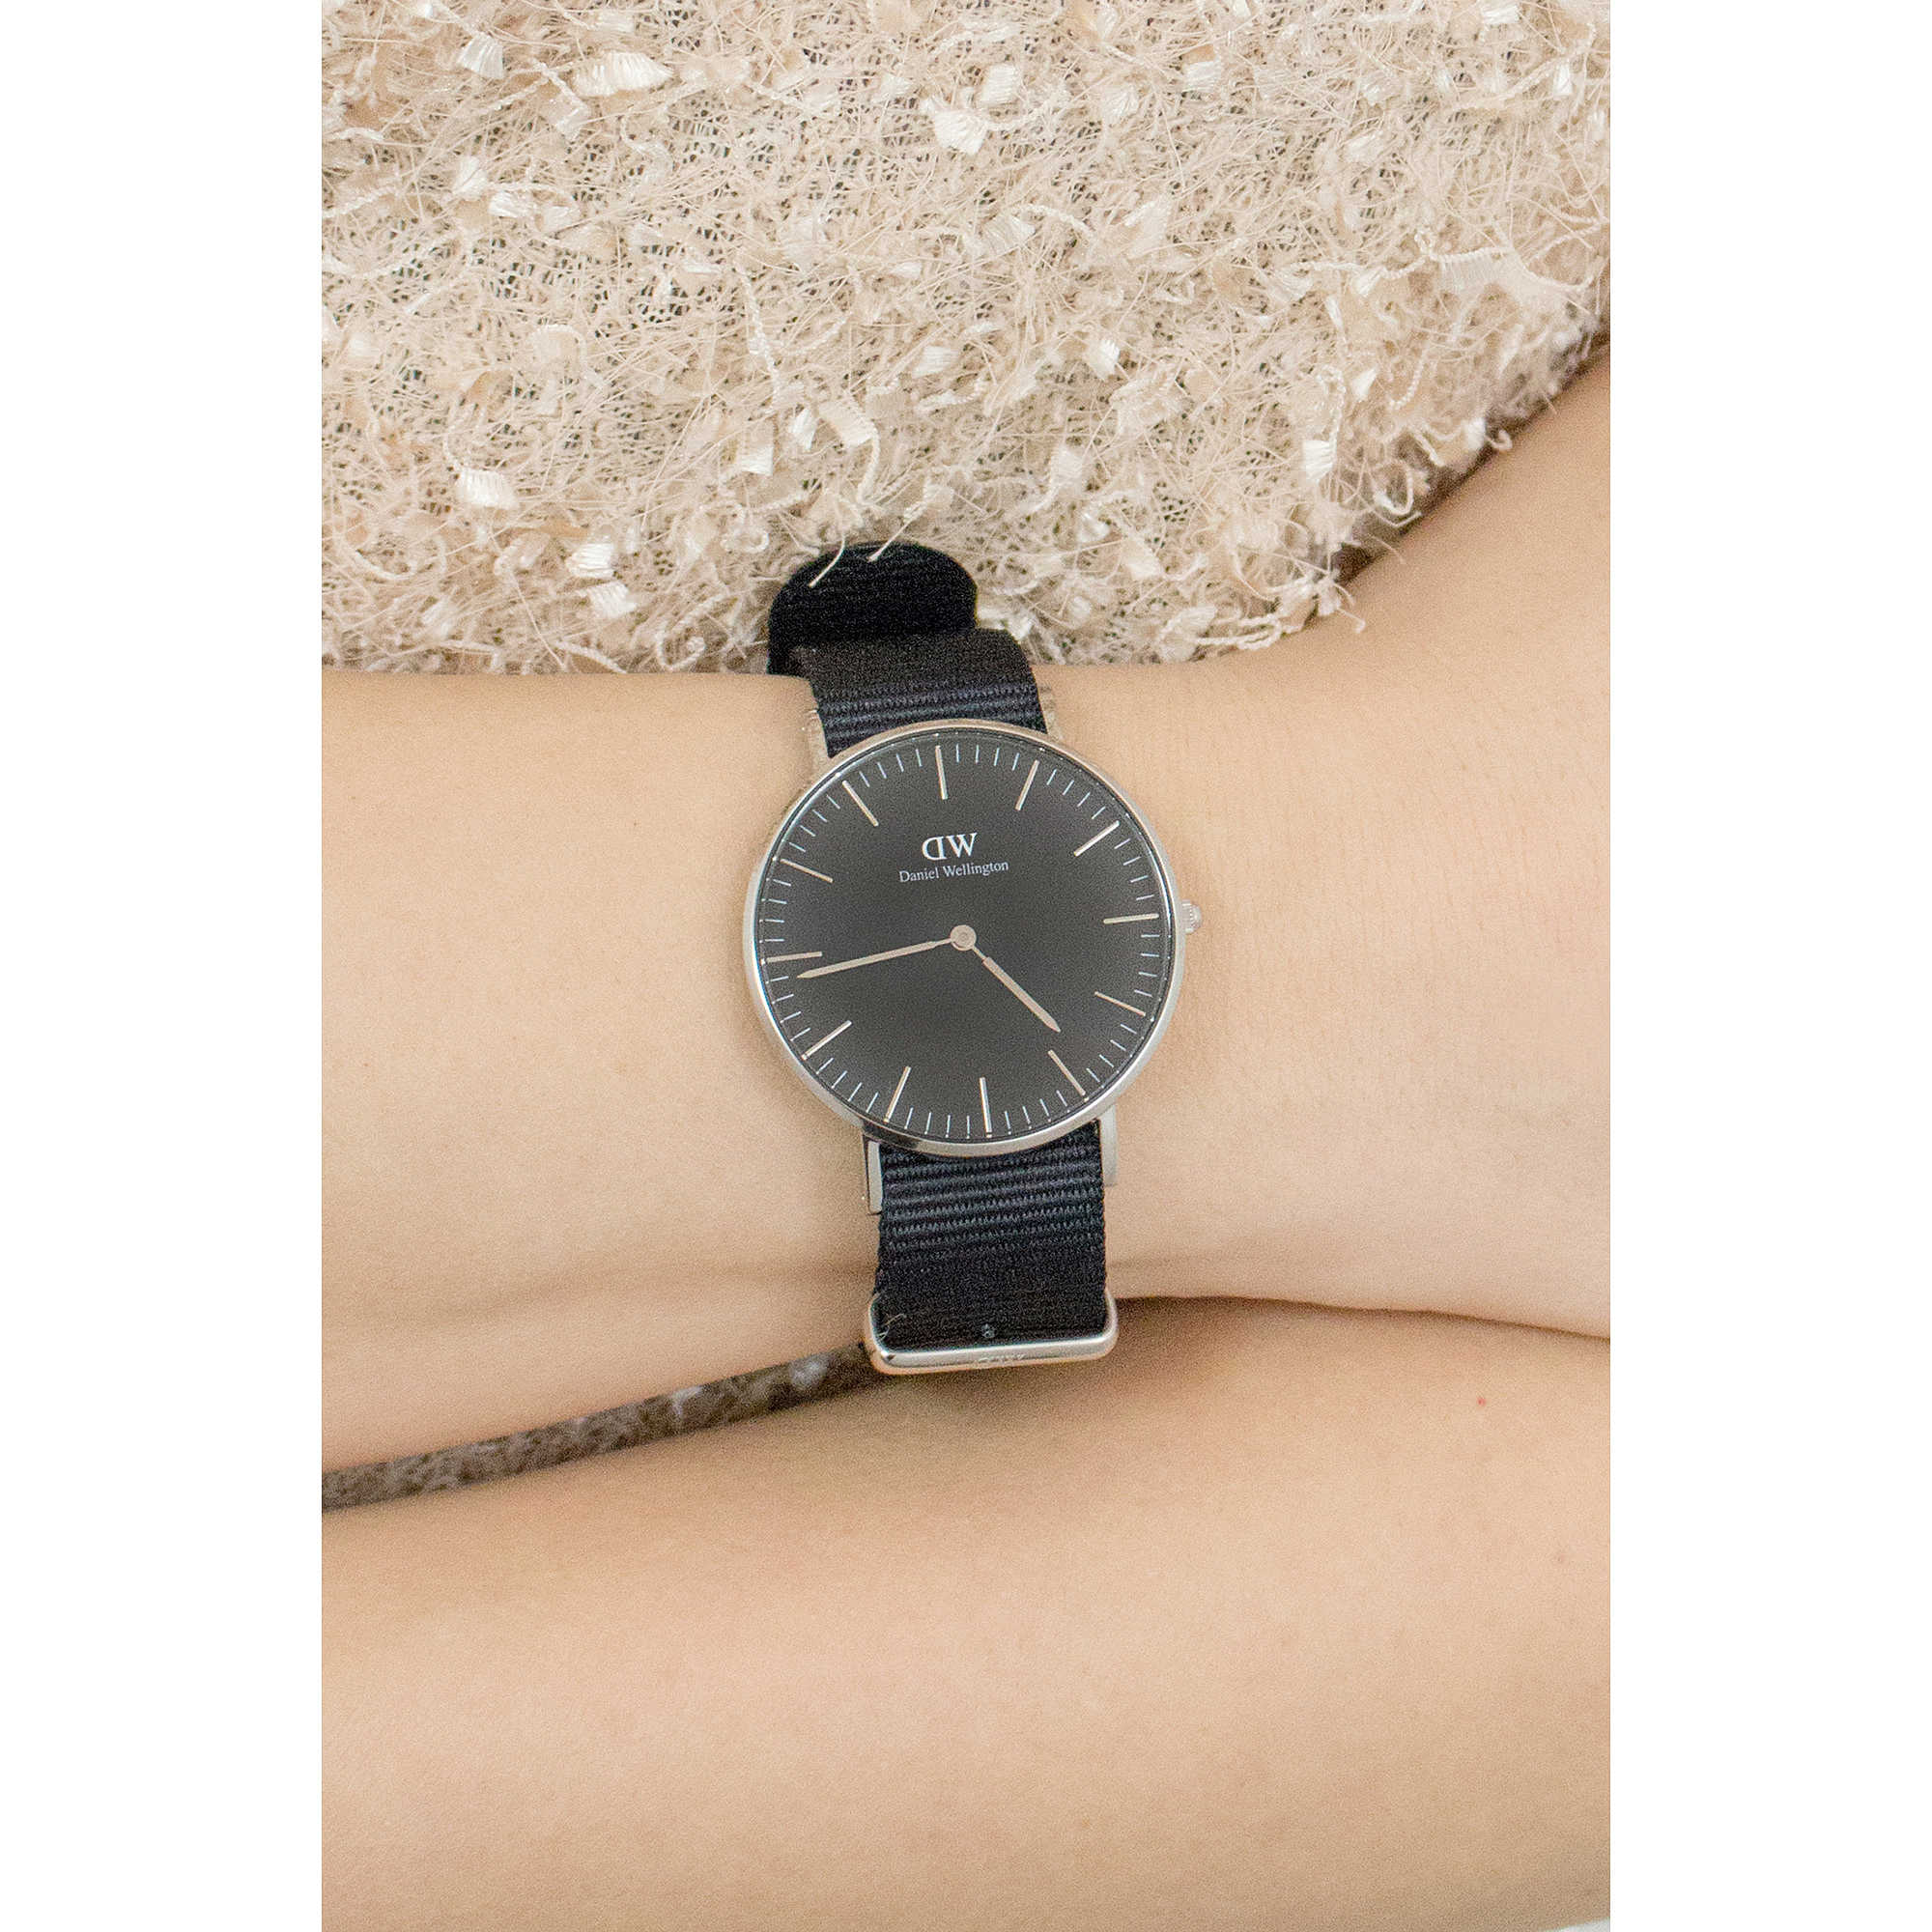 Ben noto watch only time woman Daniel Wellington Classic DW00100151 only  FM83